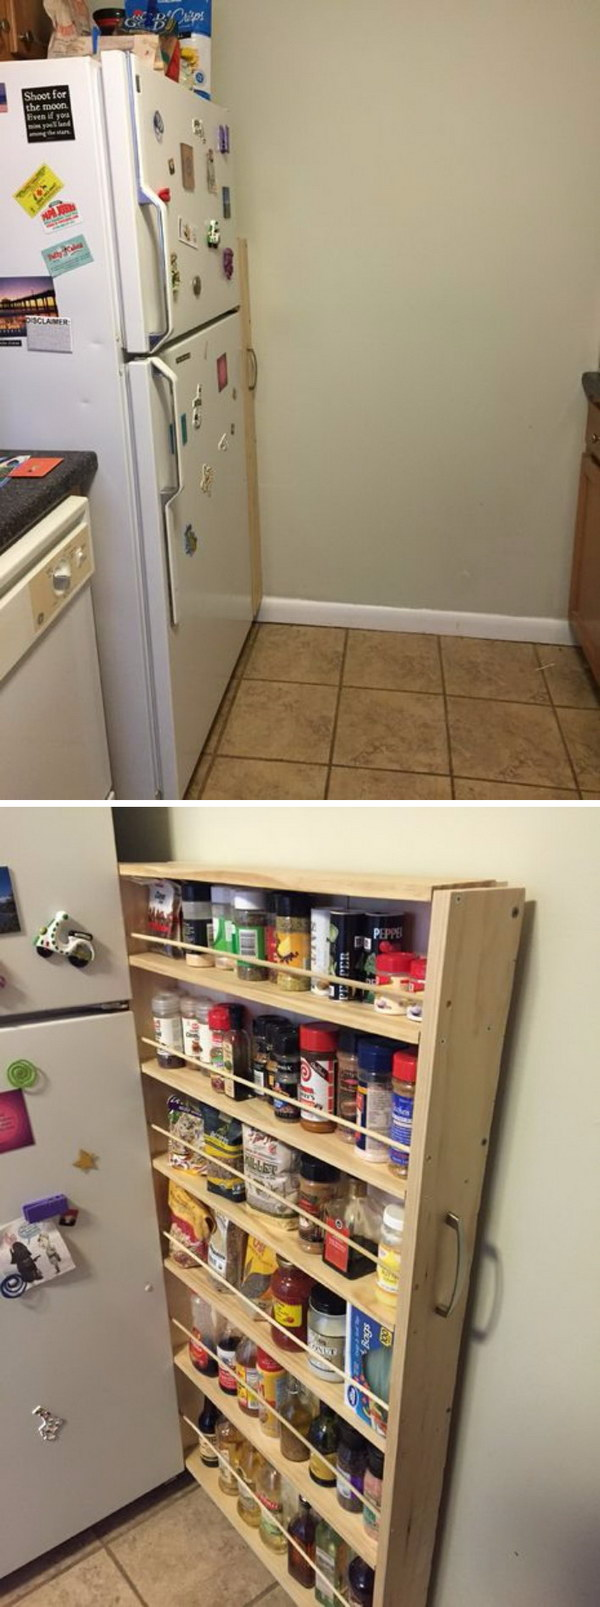 Hidden Fridge Gap Slide-Out Pantry.